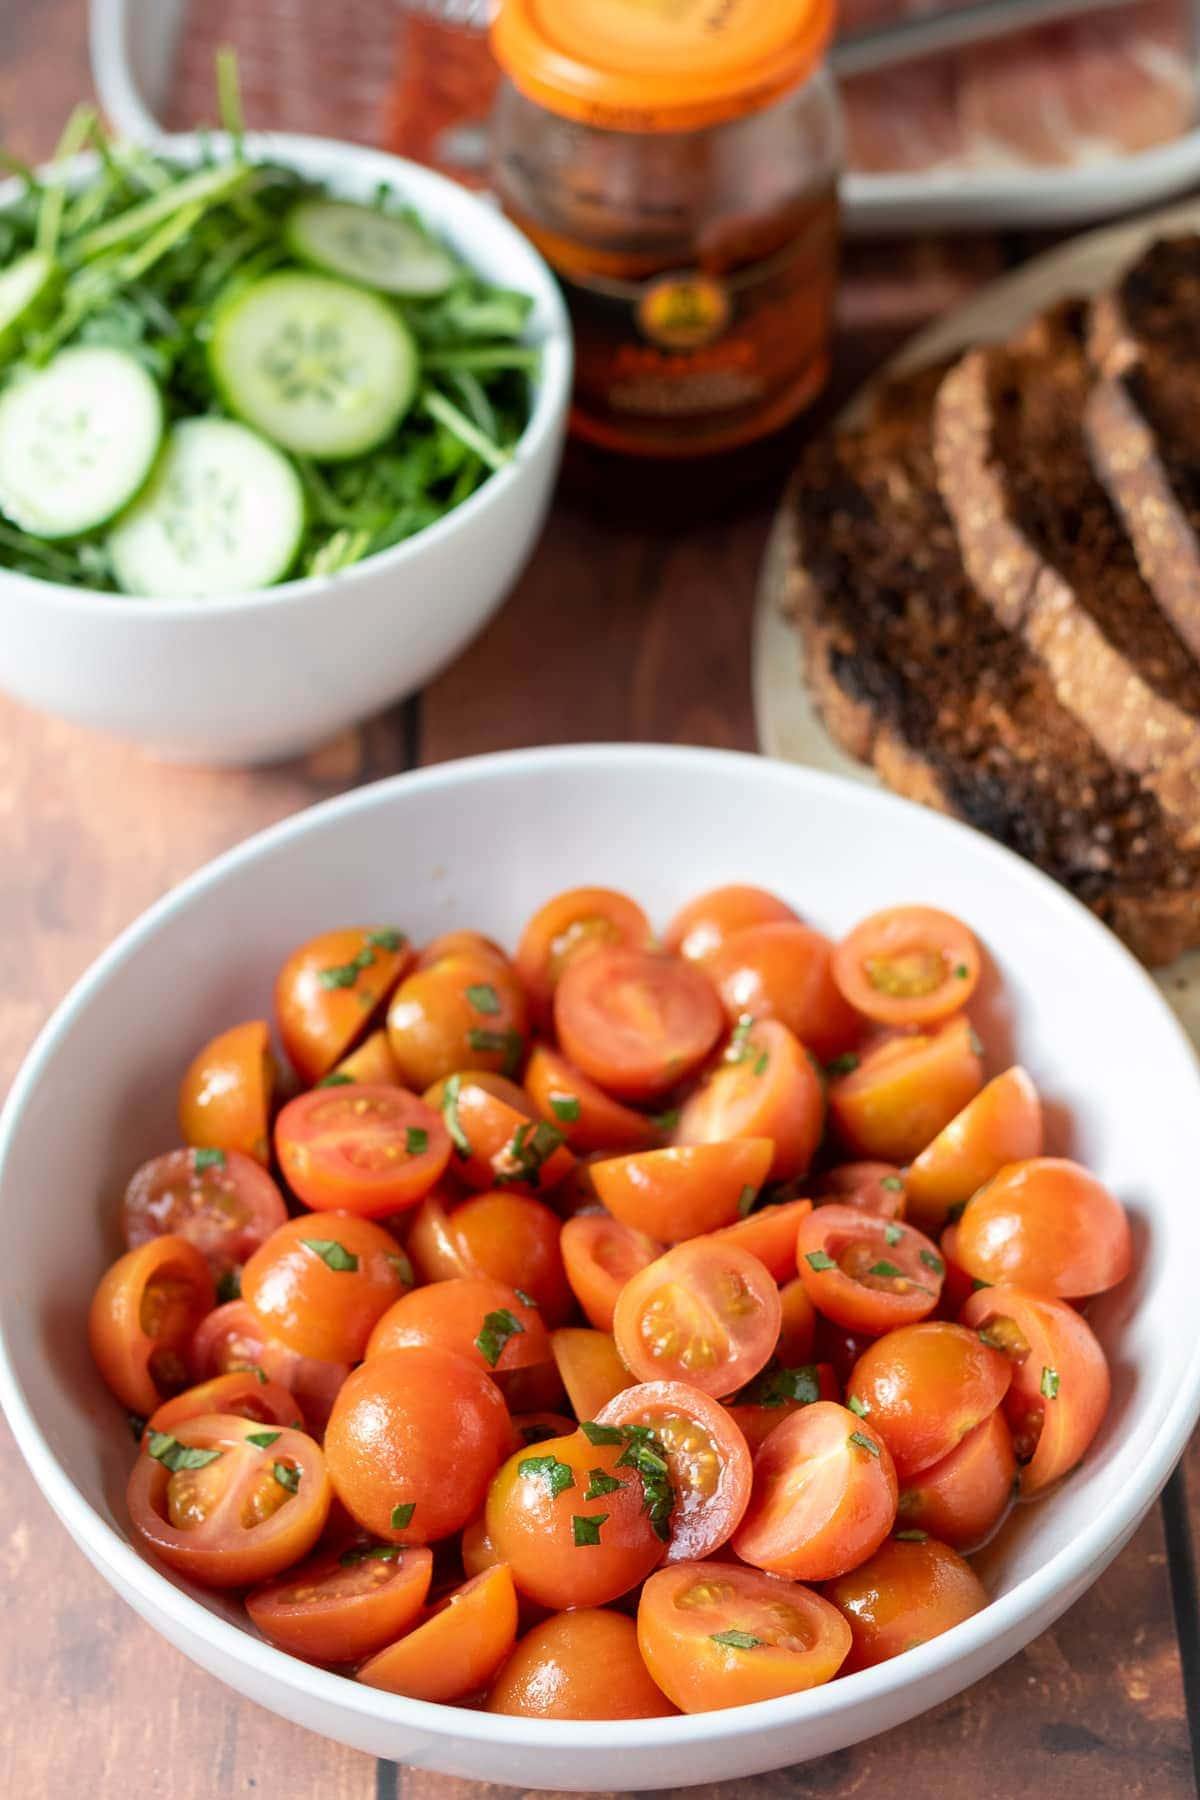 A bowl with cherry tomatoes in covered in a sweet dressing. In the background a bowl of sliced cucumber with a plate of tasted bread beside.